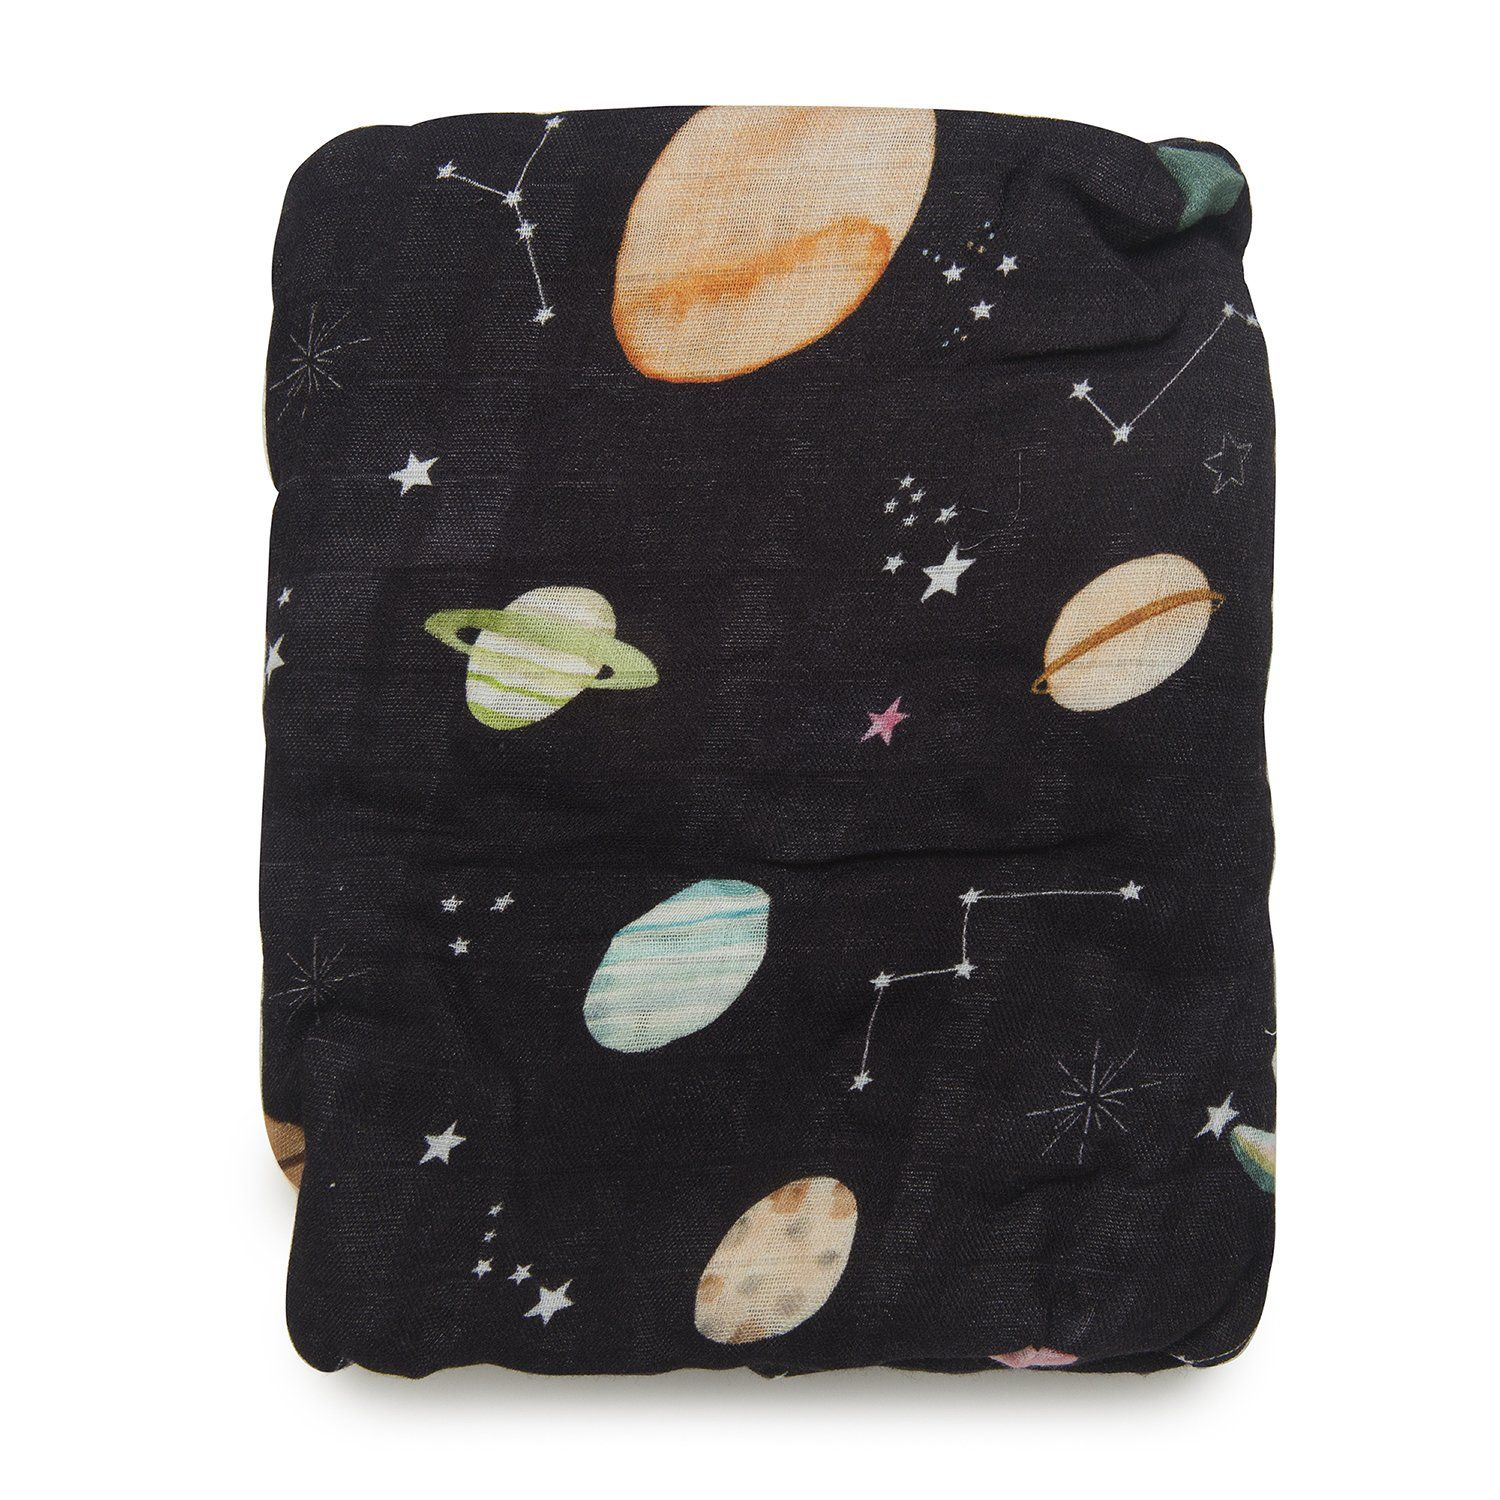 Planets Crib Sheet - Project Nursery